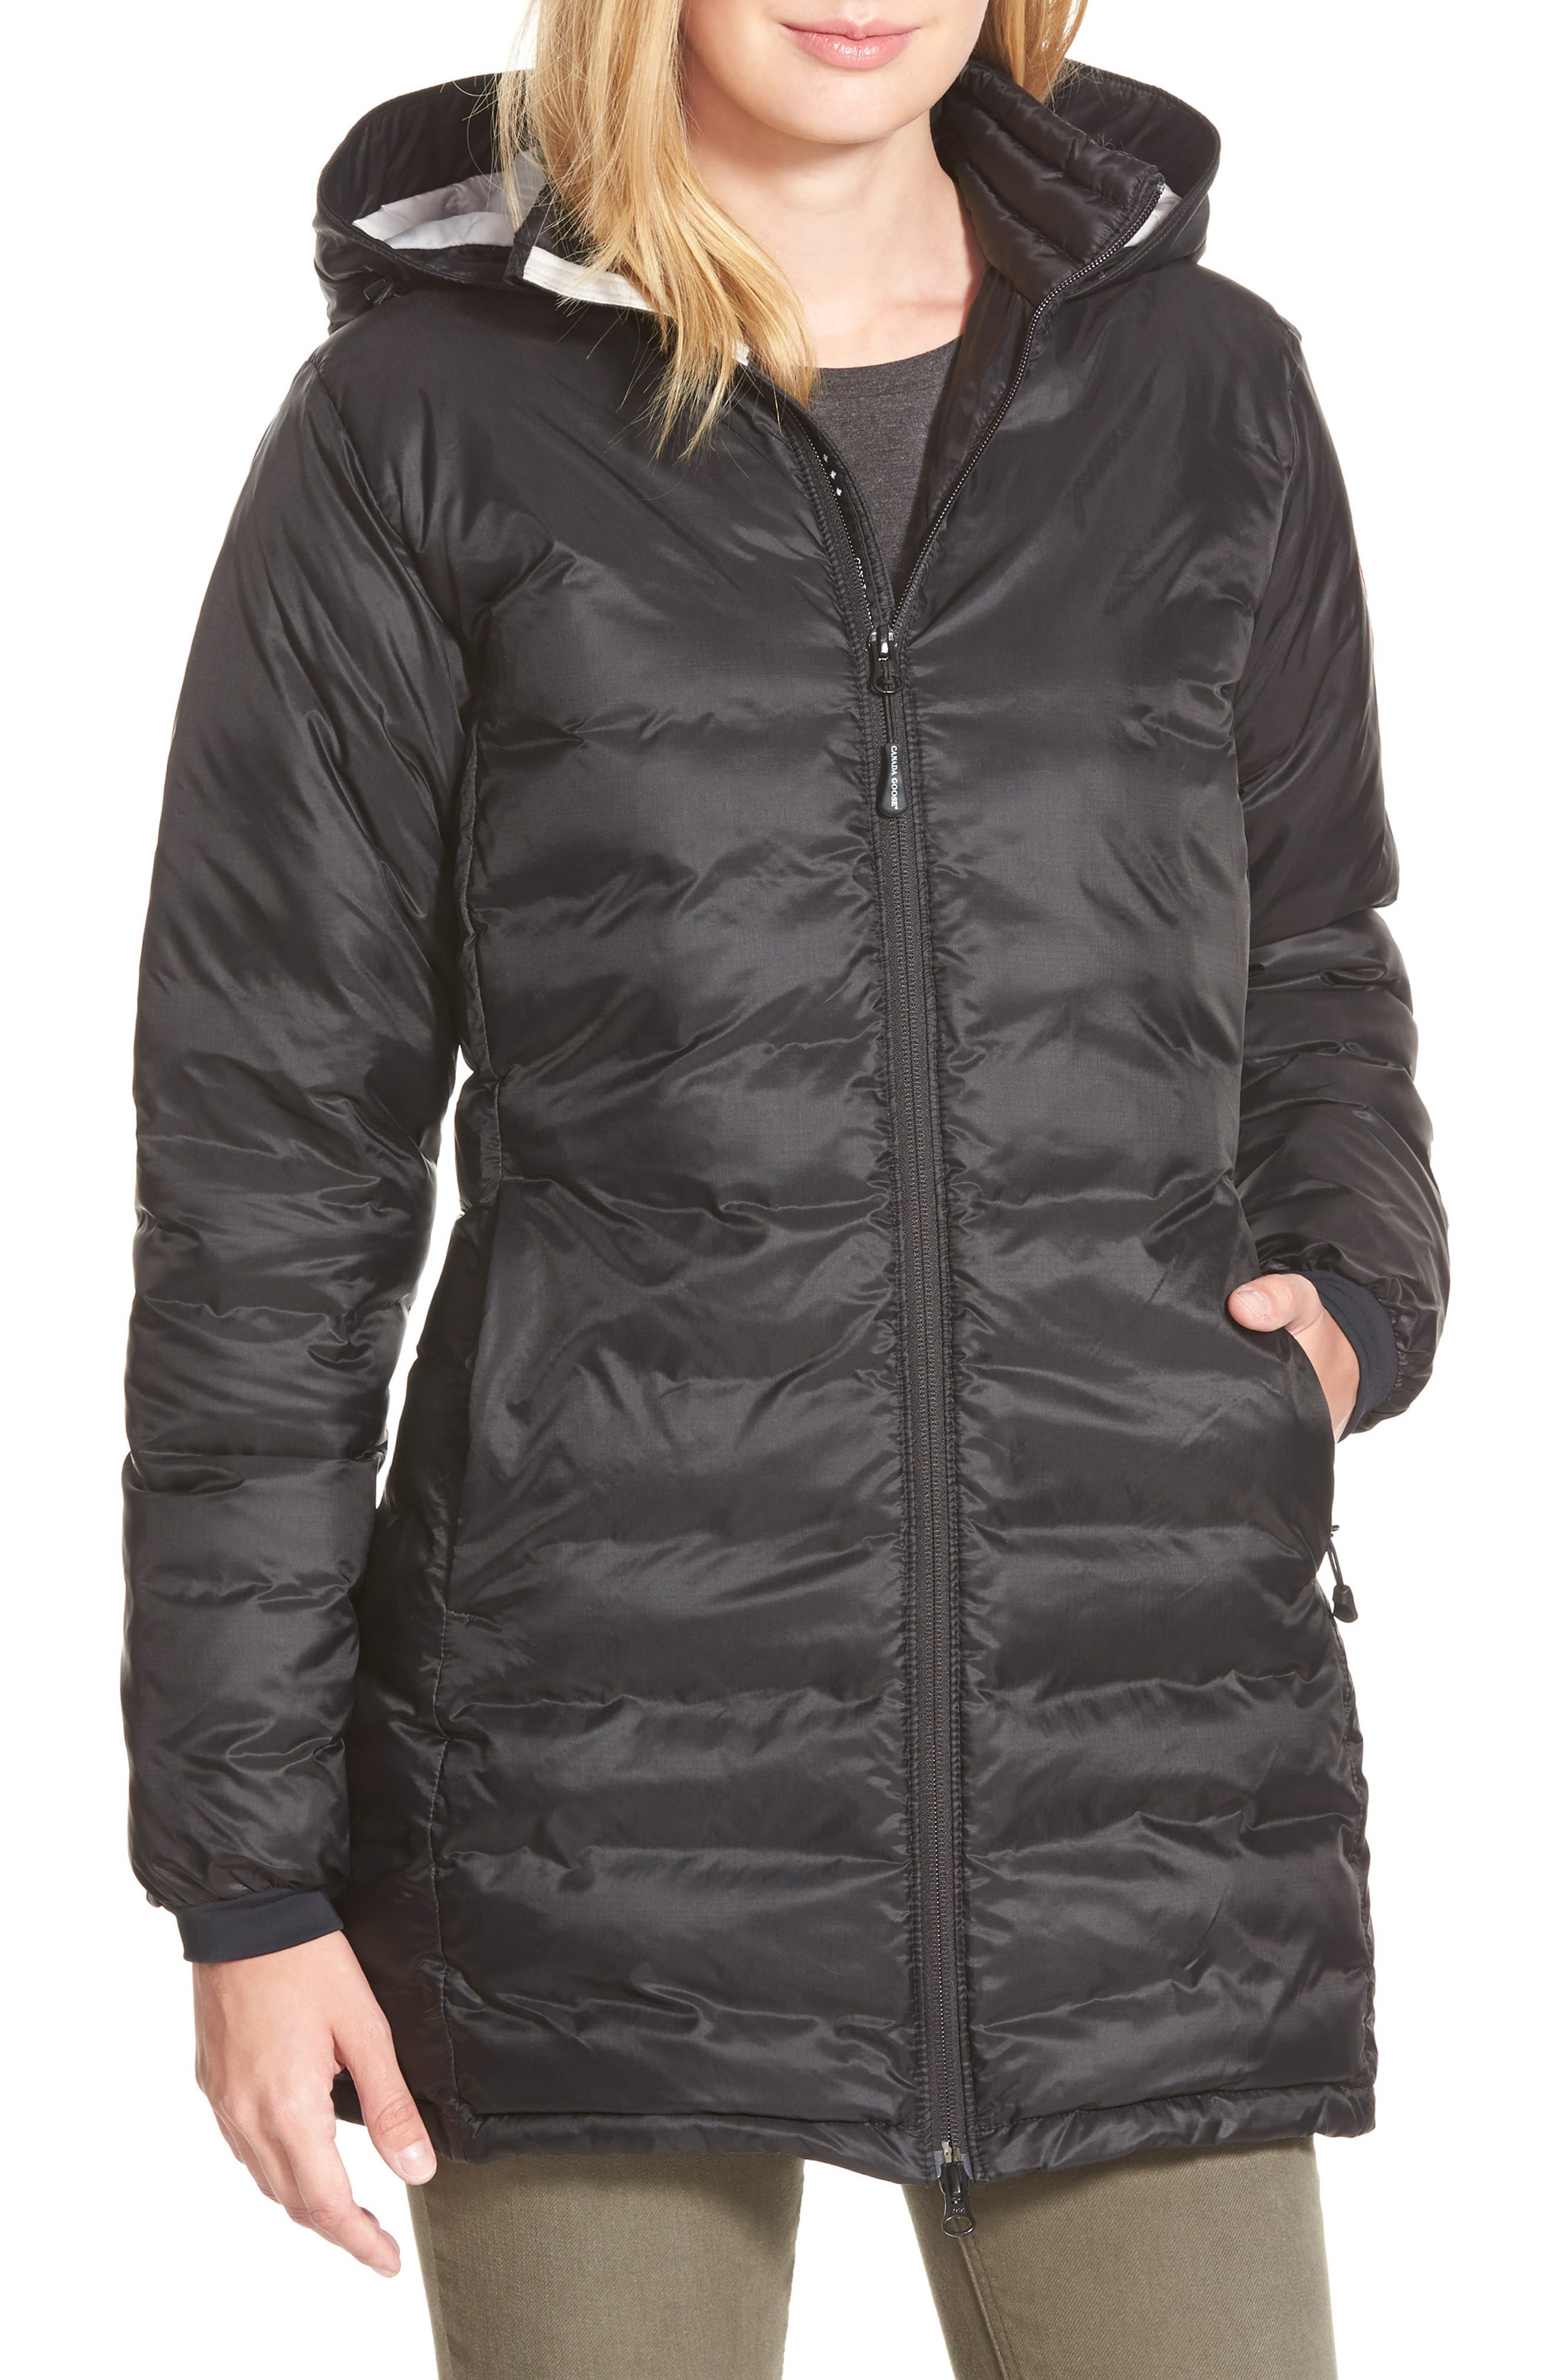 'Camp' Slim Fit Hooded Packable Down Jacket,                             Main thumbnail 1, color,                             Black